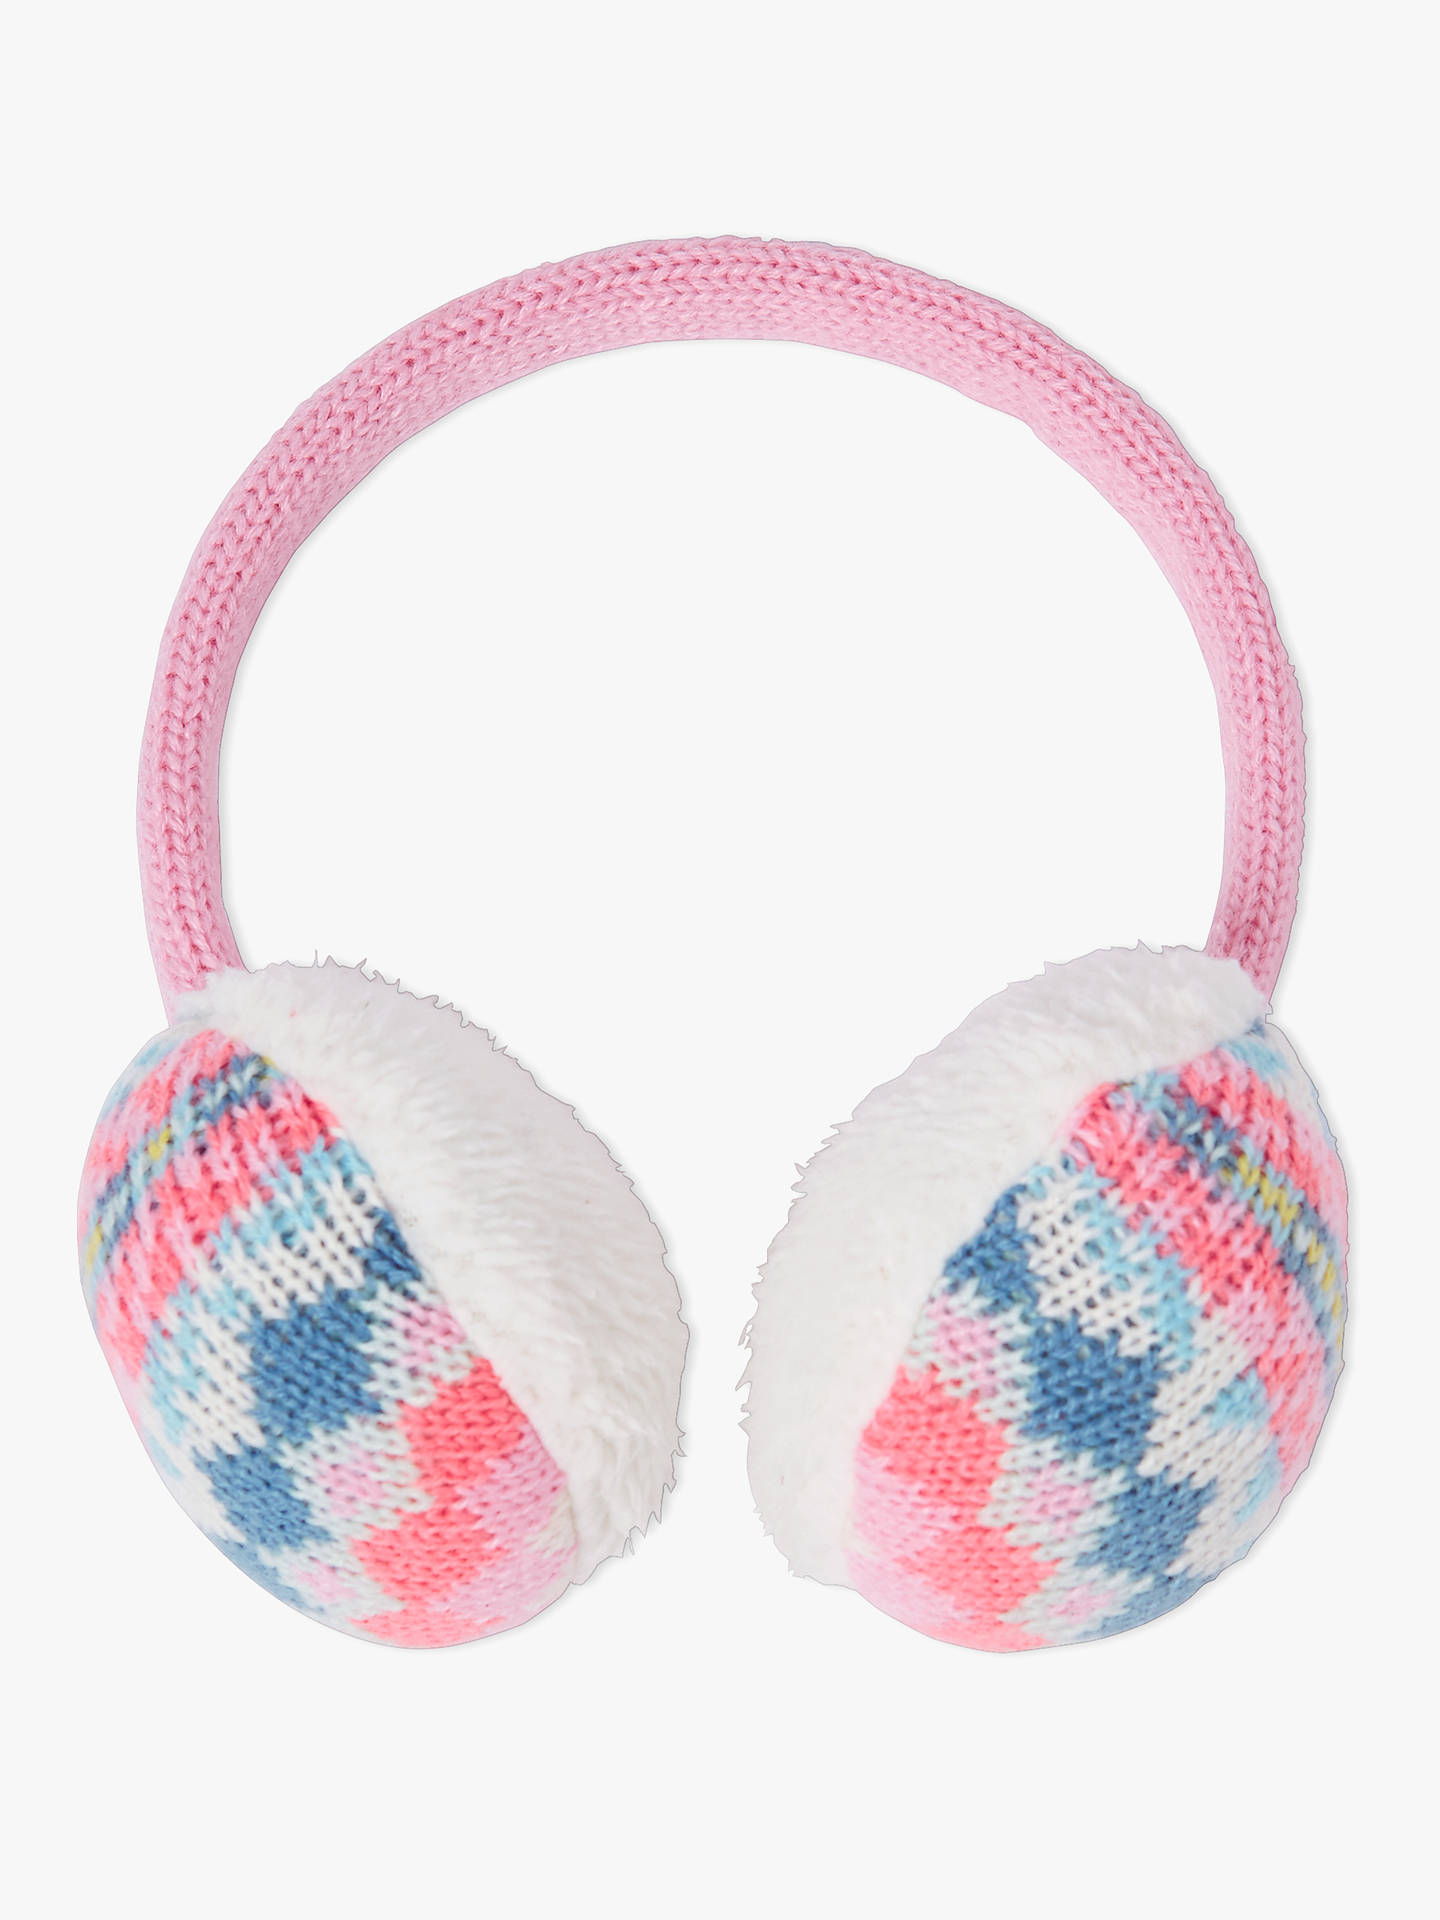 BuyJohn Lewis & Partners Children's Pretty Fair Isle Earmuffs, Pink/Blue Online at johnlewis.com